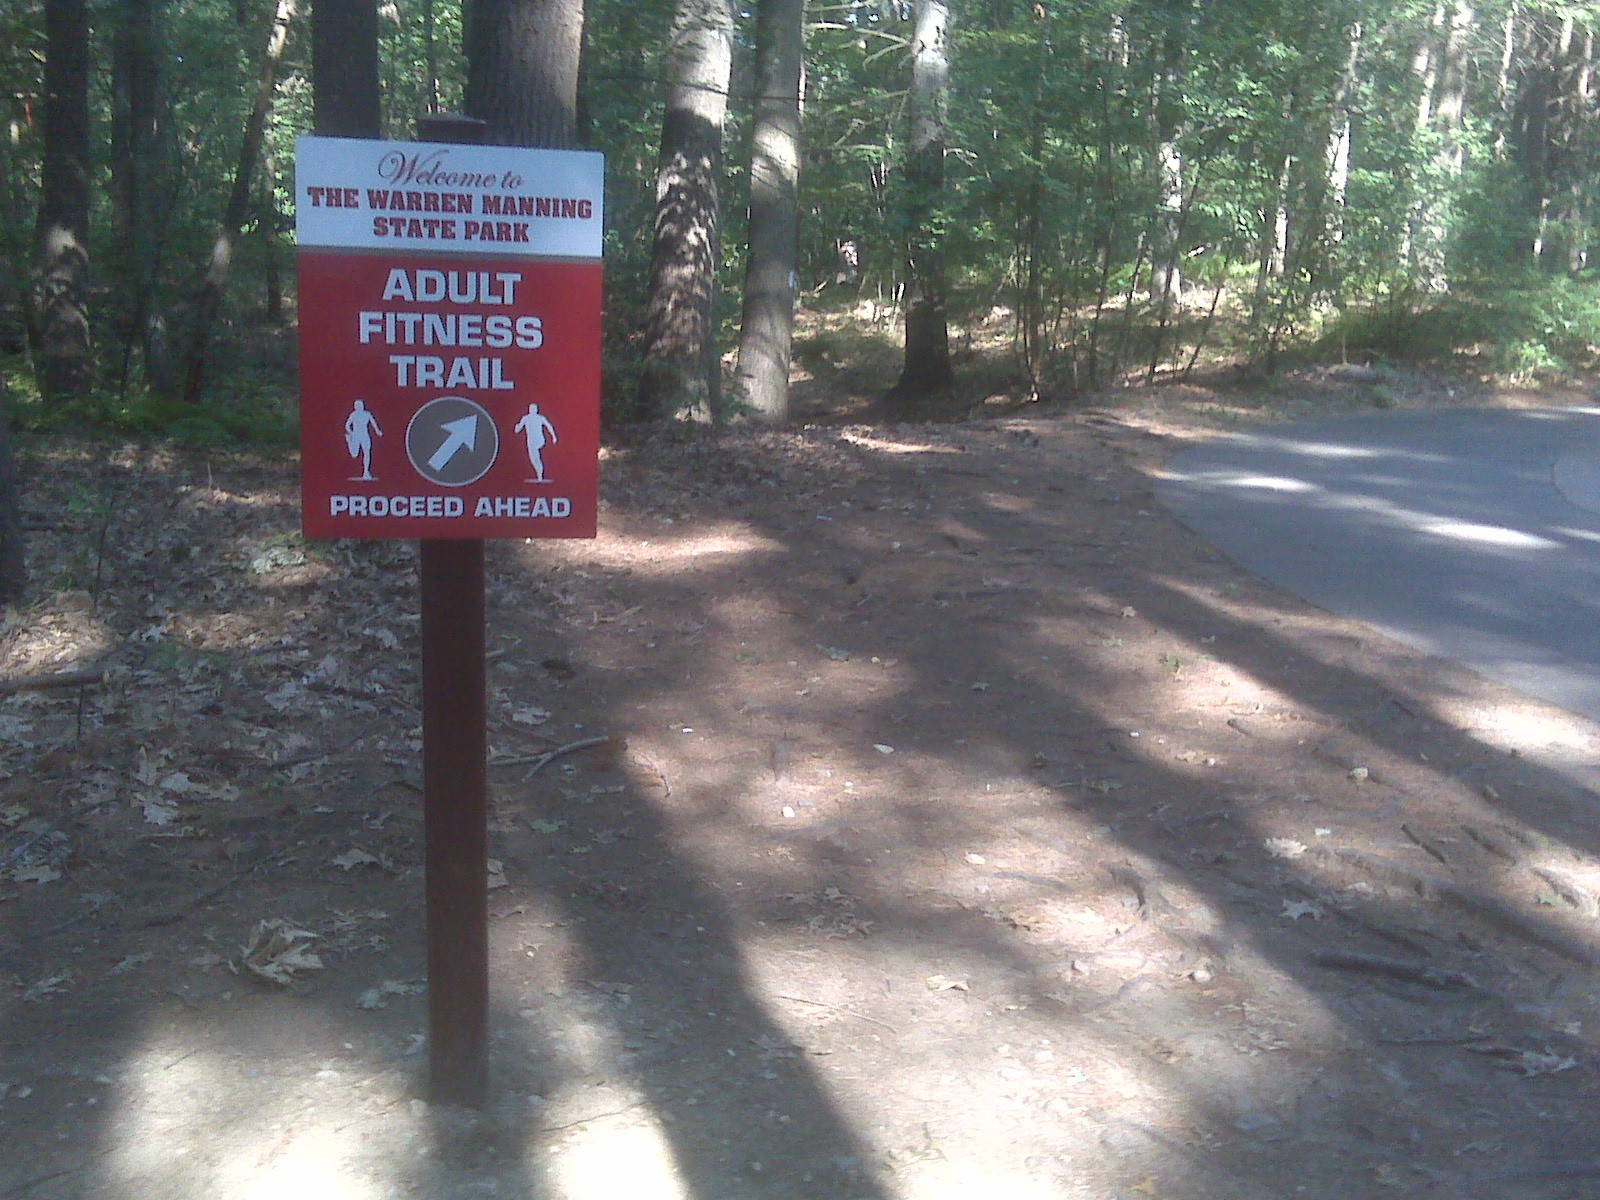 Billerica ma official website - Towne place at garden state park ...